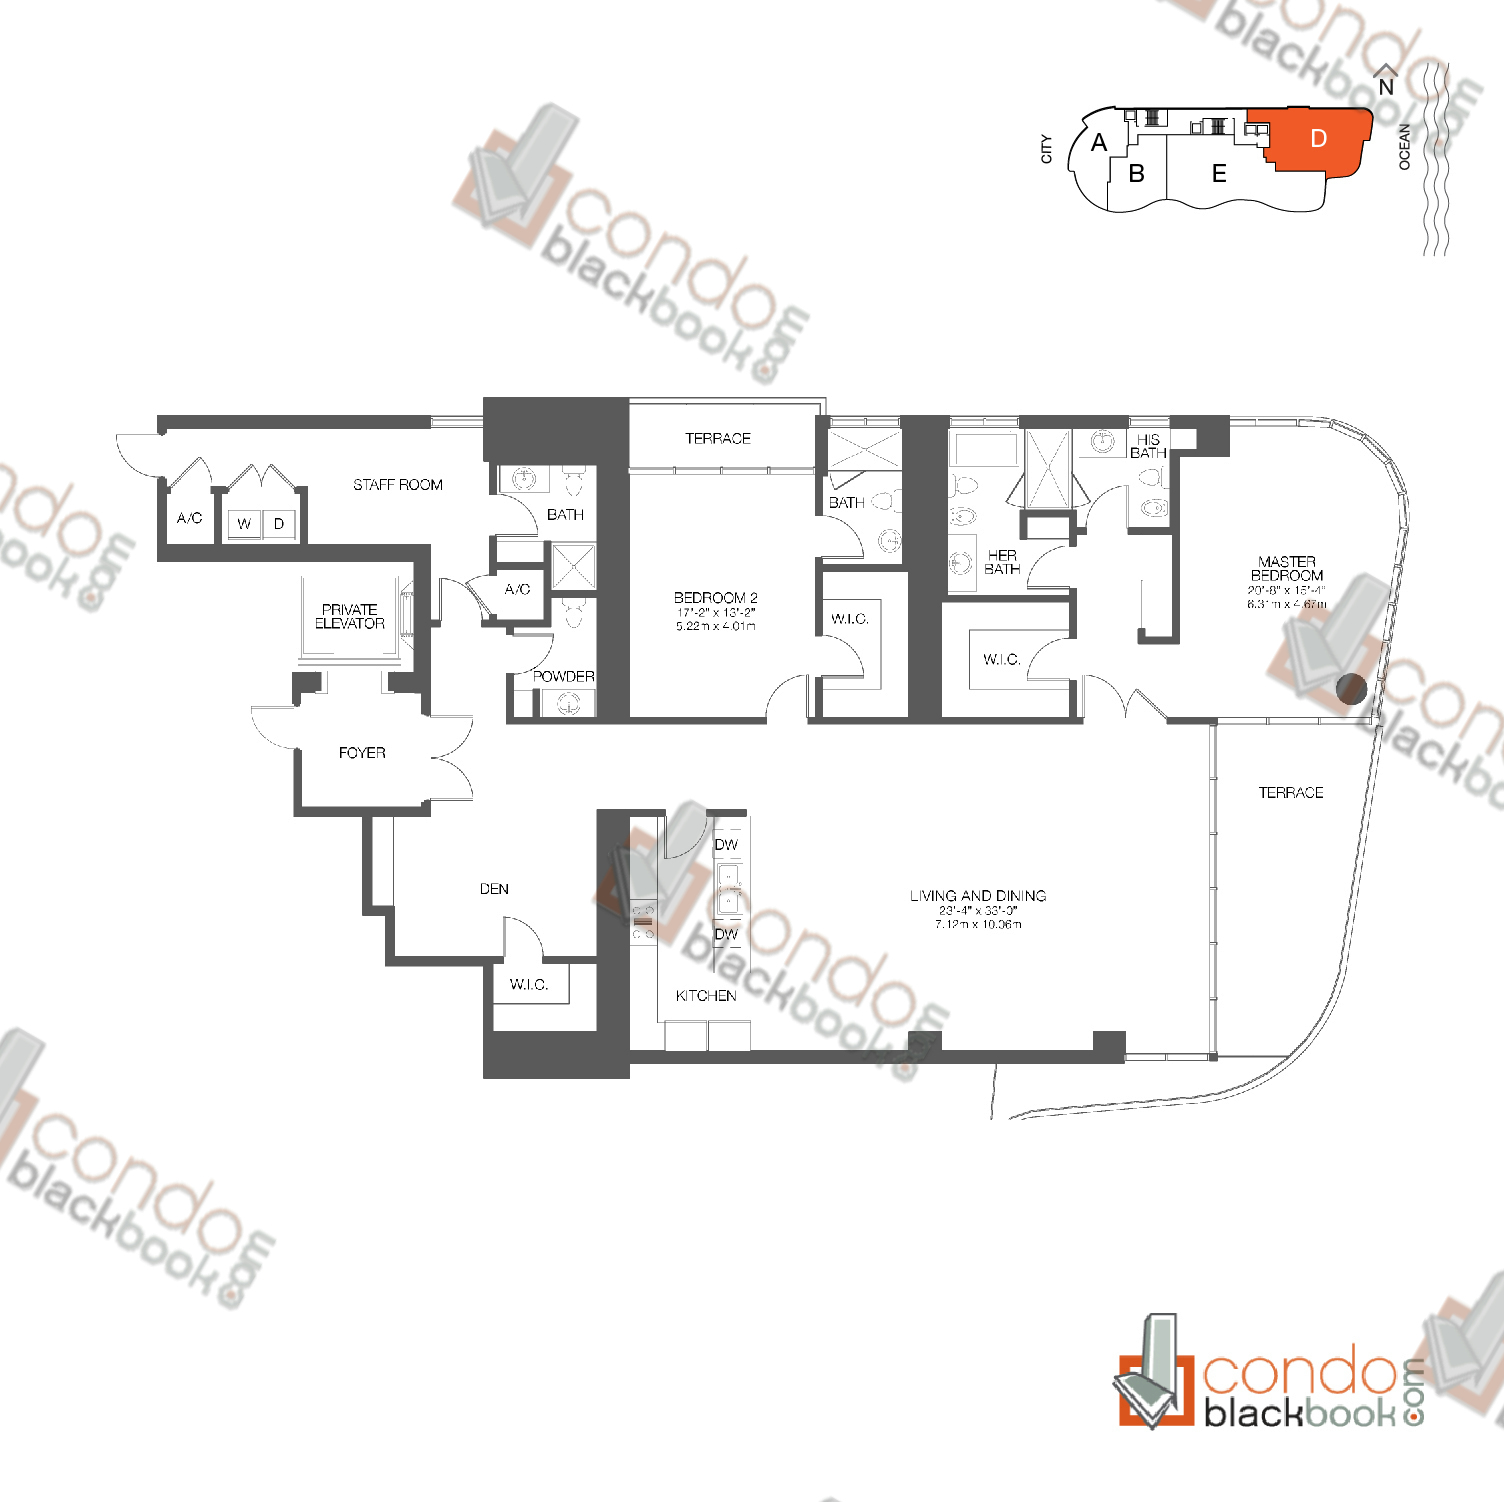 Floor plan for Chateau Beach Residences Sunny Isles Beach, model Residence D, line 03, 2/4.5 + Den bedrooms, 2,819 sq ft